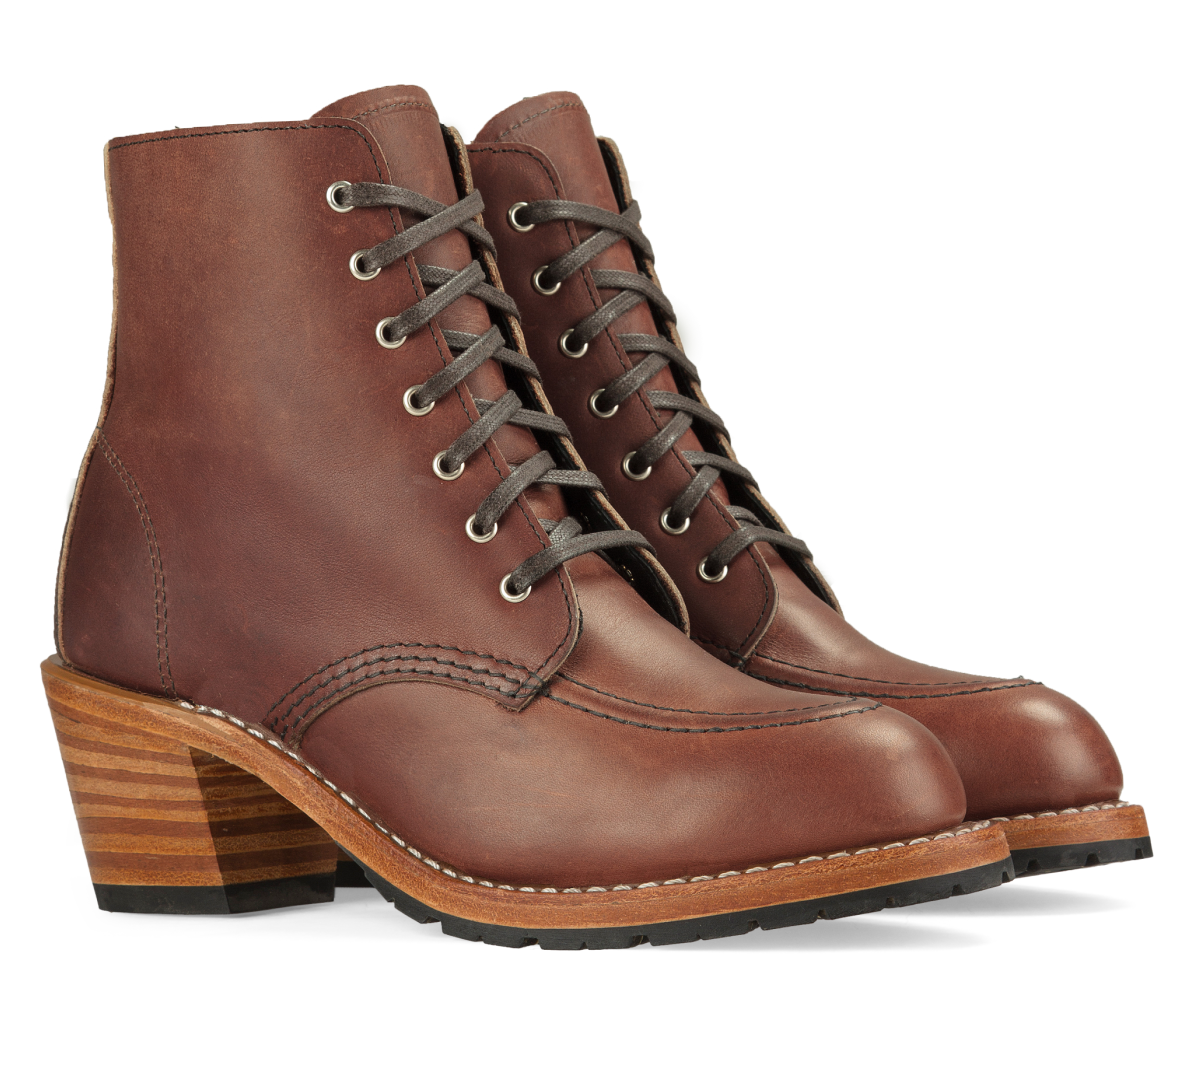 Red Wing 3406 Clara